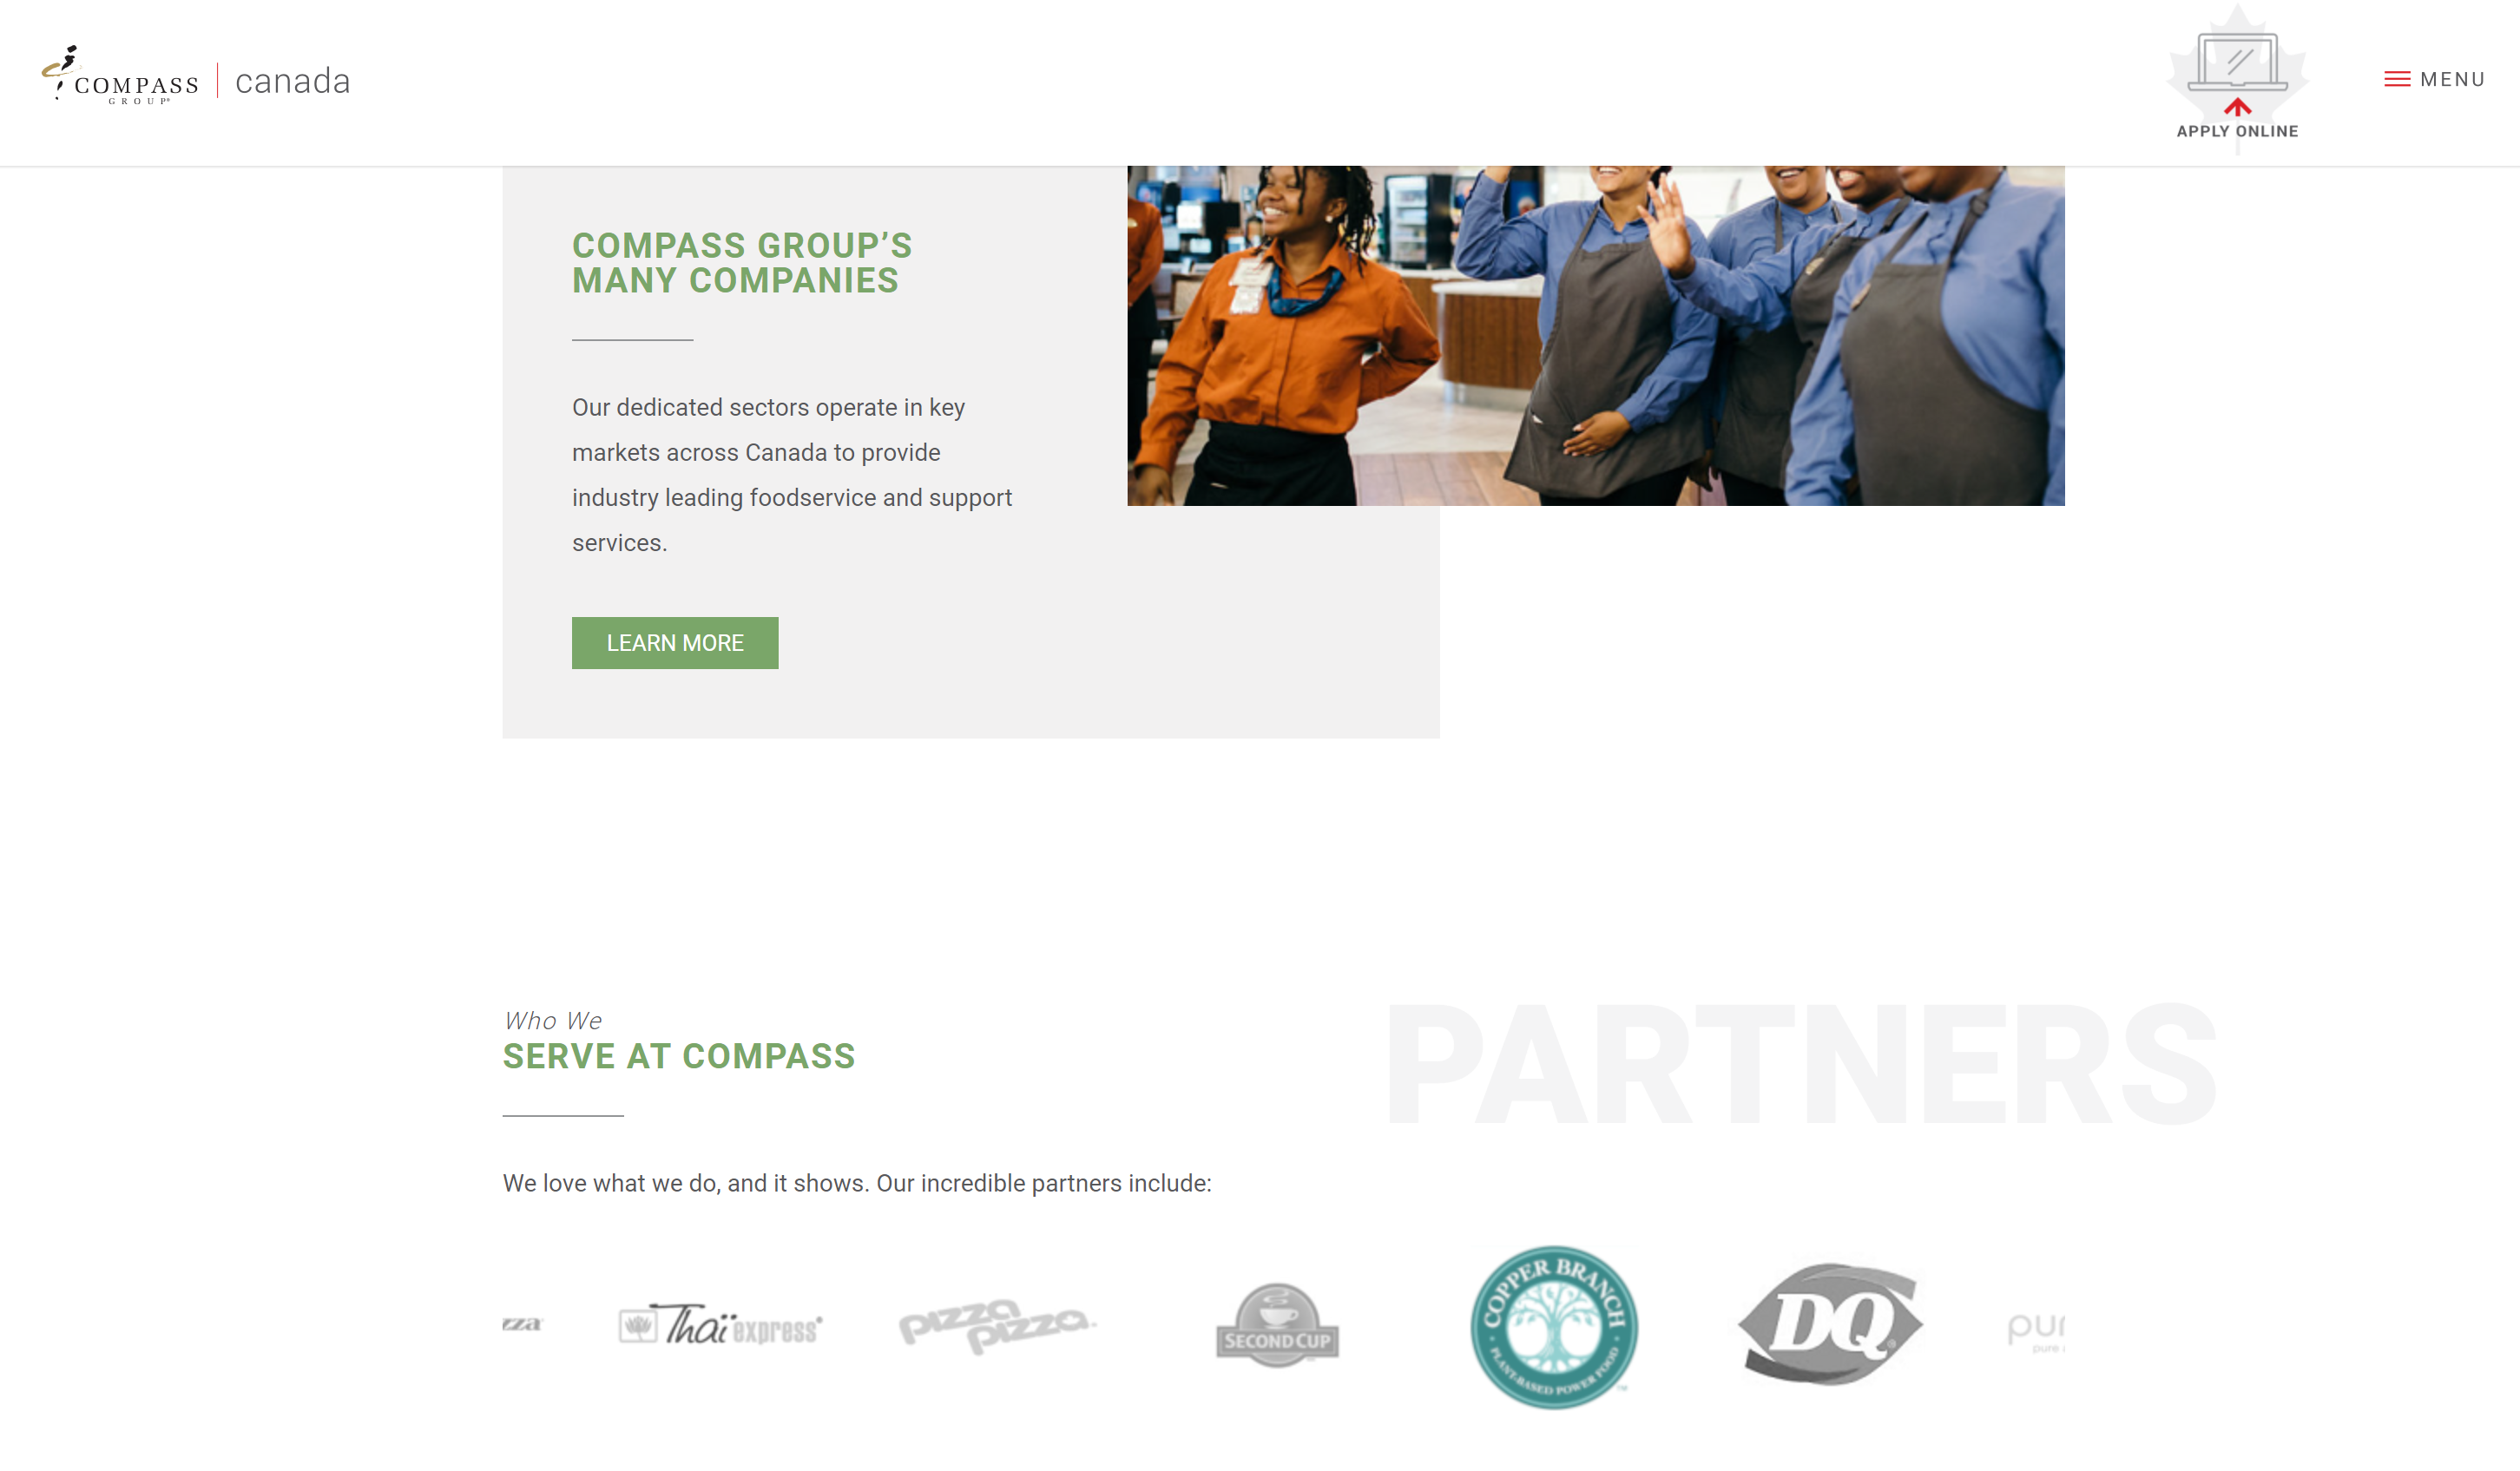 Robust, Scalable Ecommerce: New Ordering System for Compass Group Canada